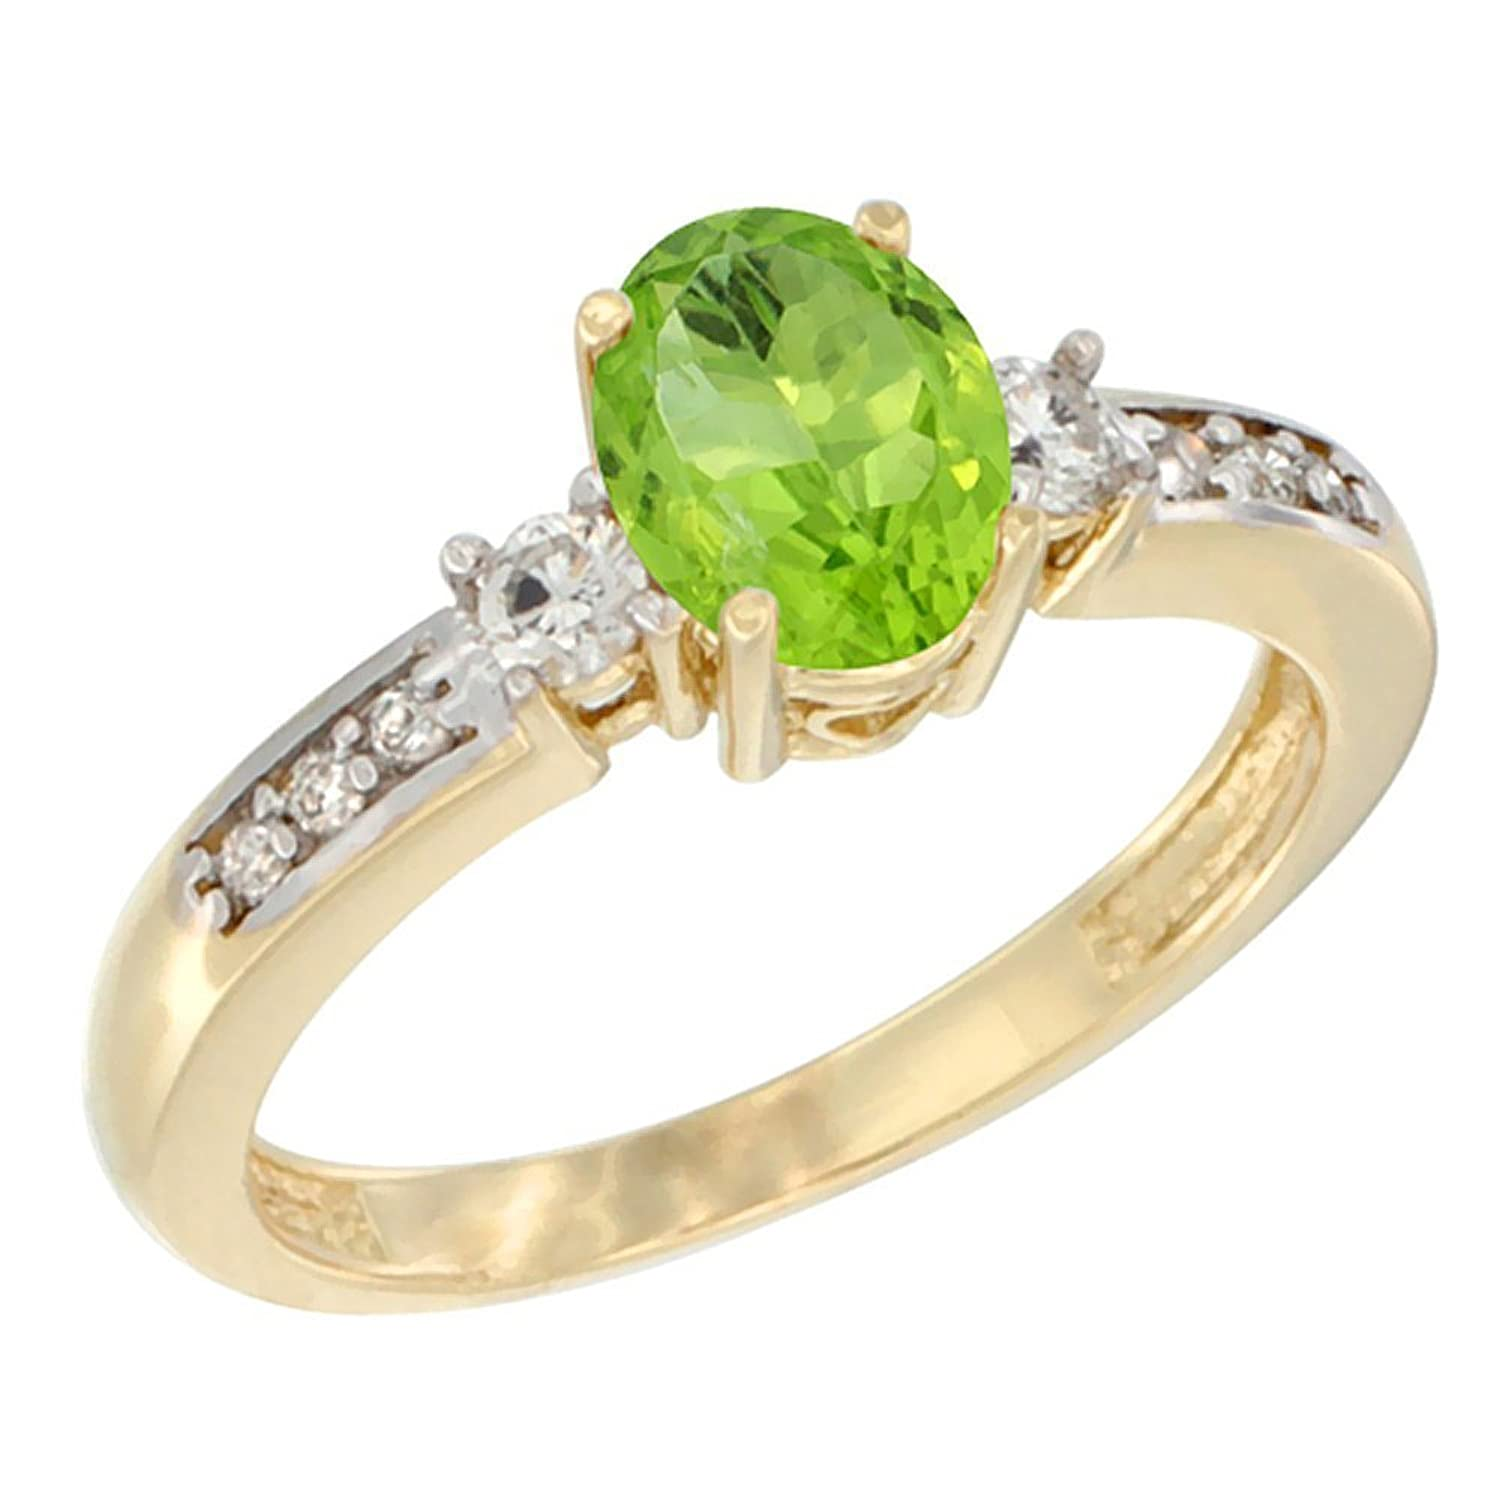 10K White Gold Diamond Natural Peridot Engagement Ring Oval 7×5 mm, sizes 5 – 10